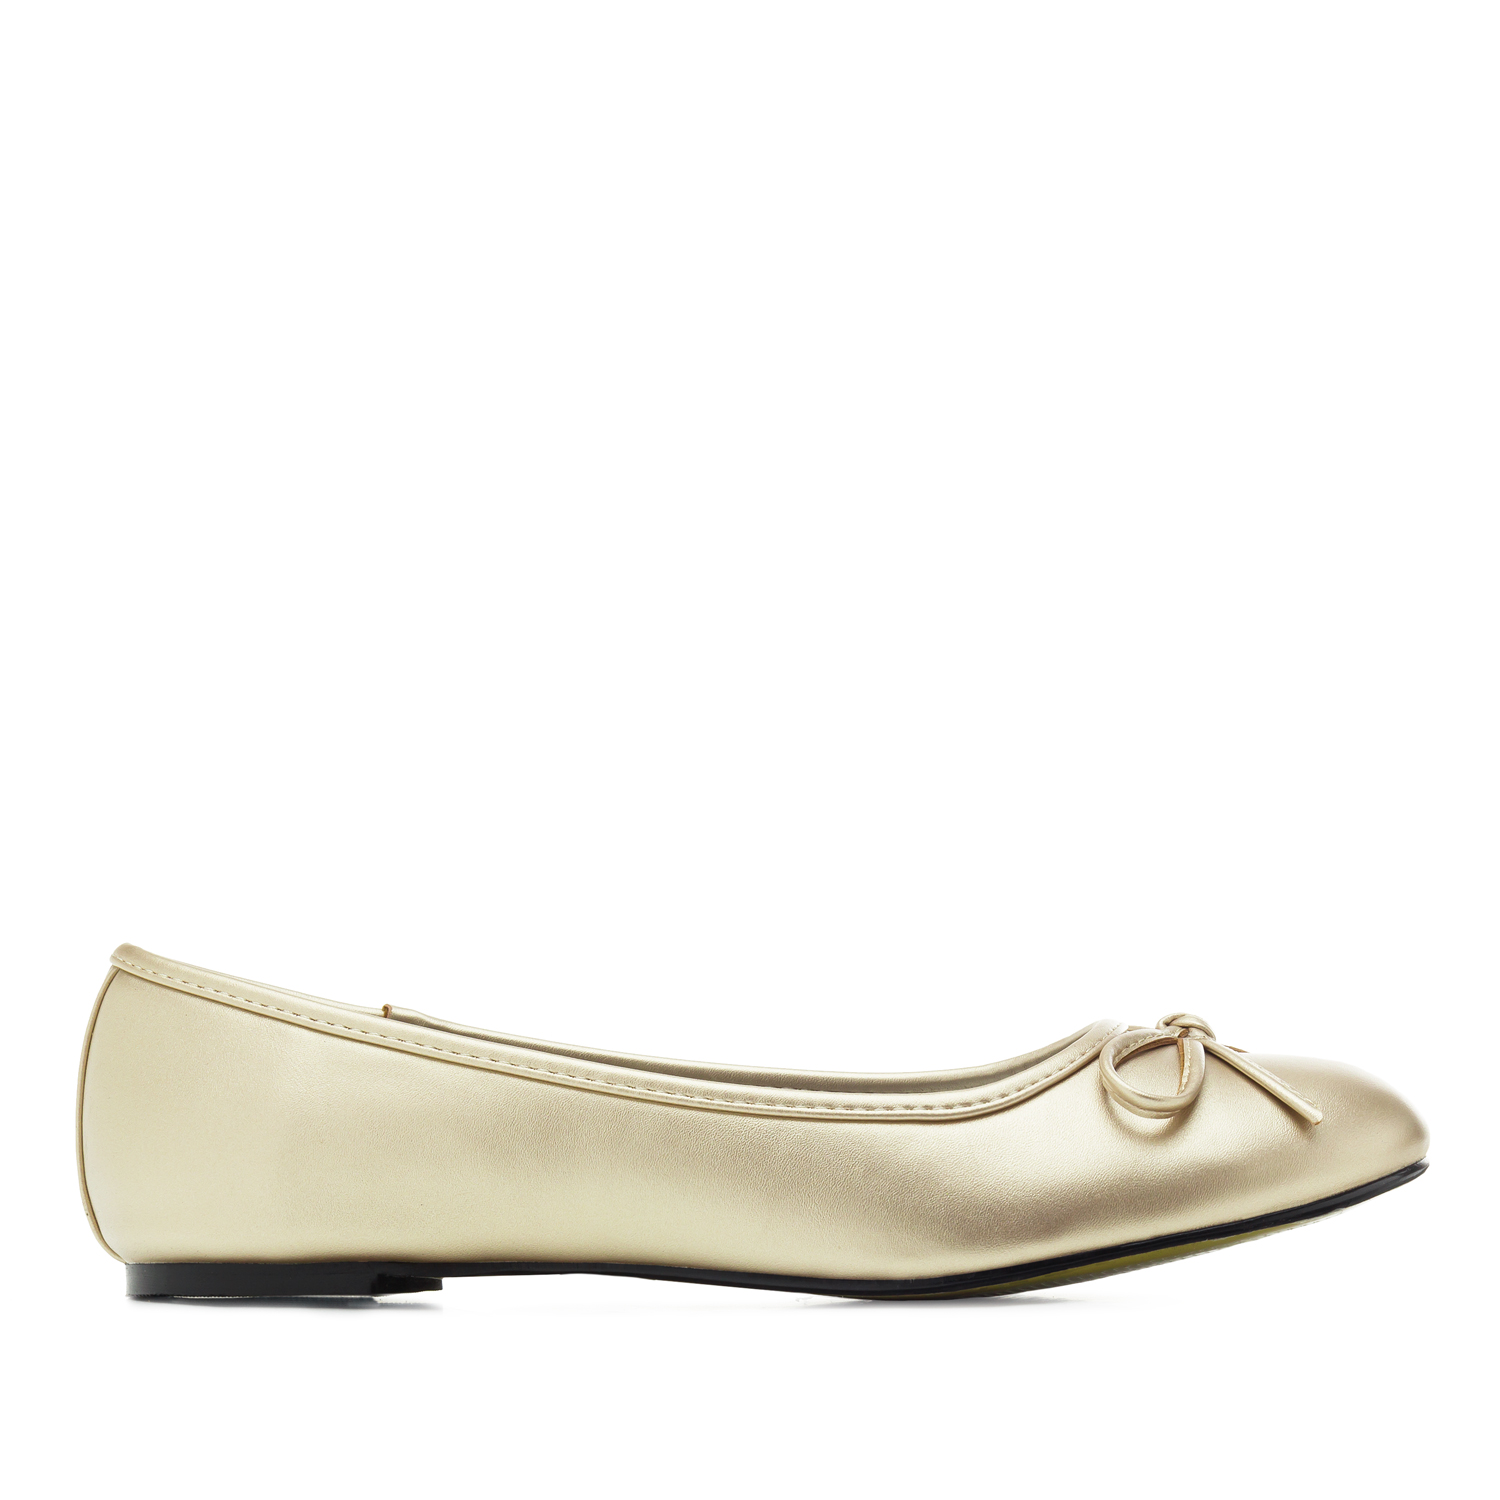 Classic Big Flat Ballerinas in Golden Soft